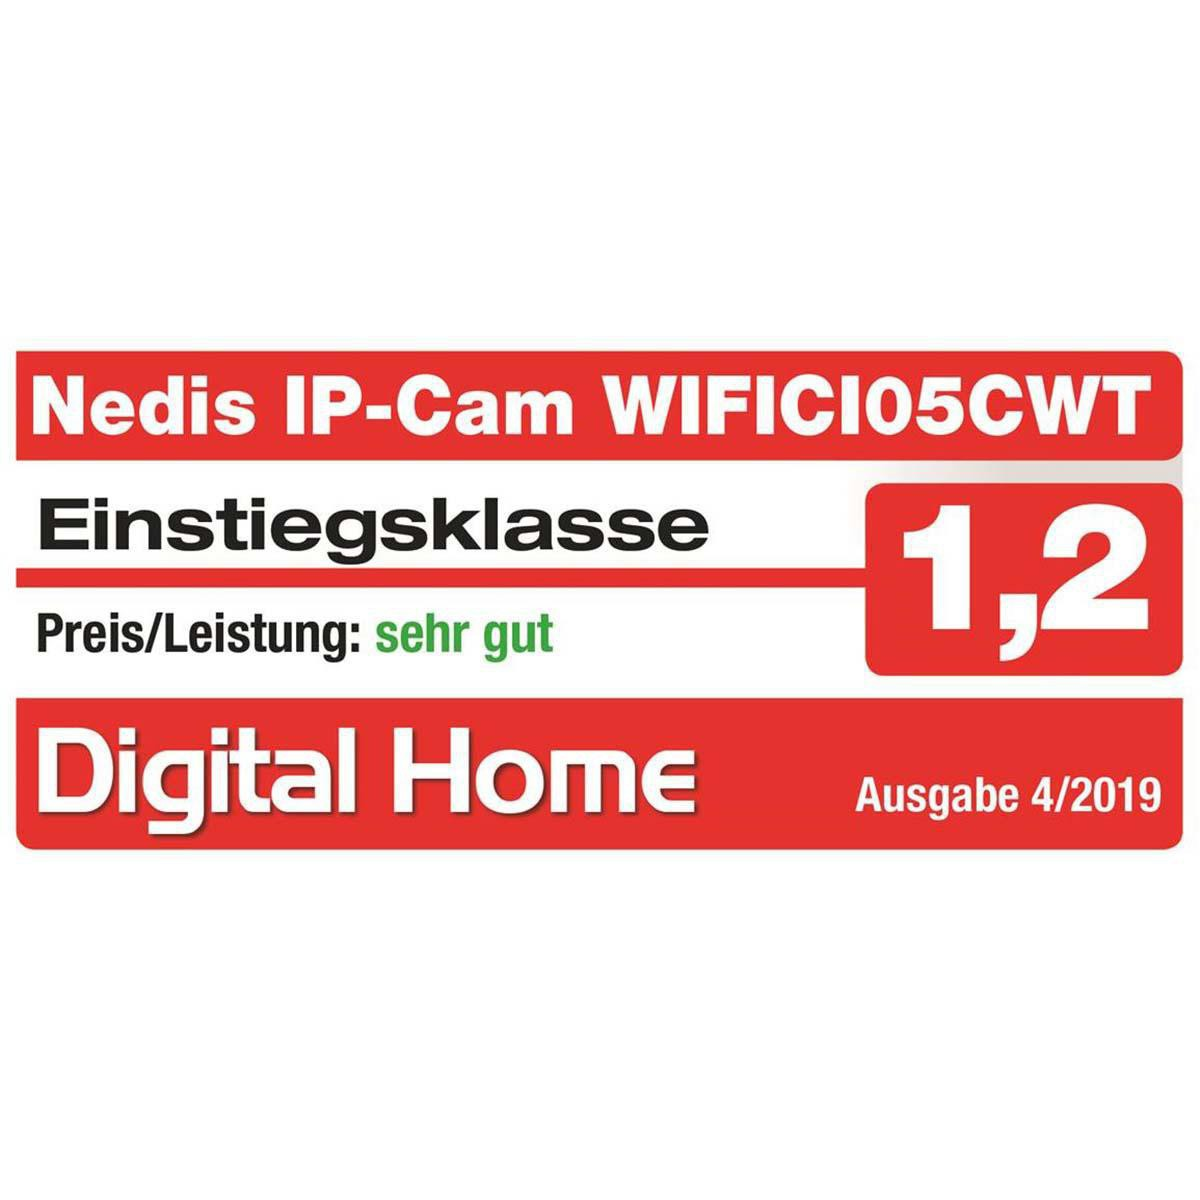 wifici05cwt 5412810290048